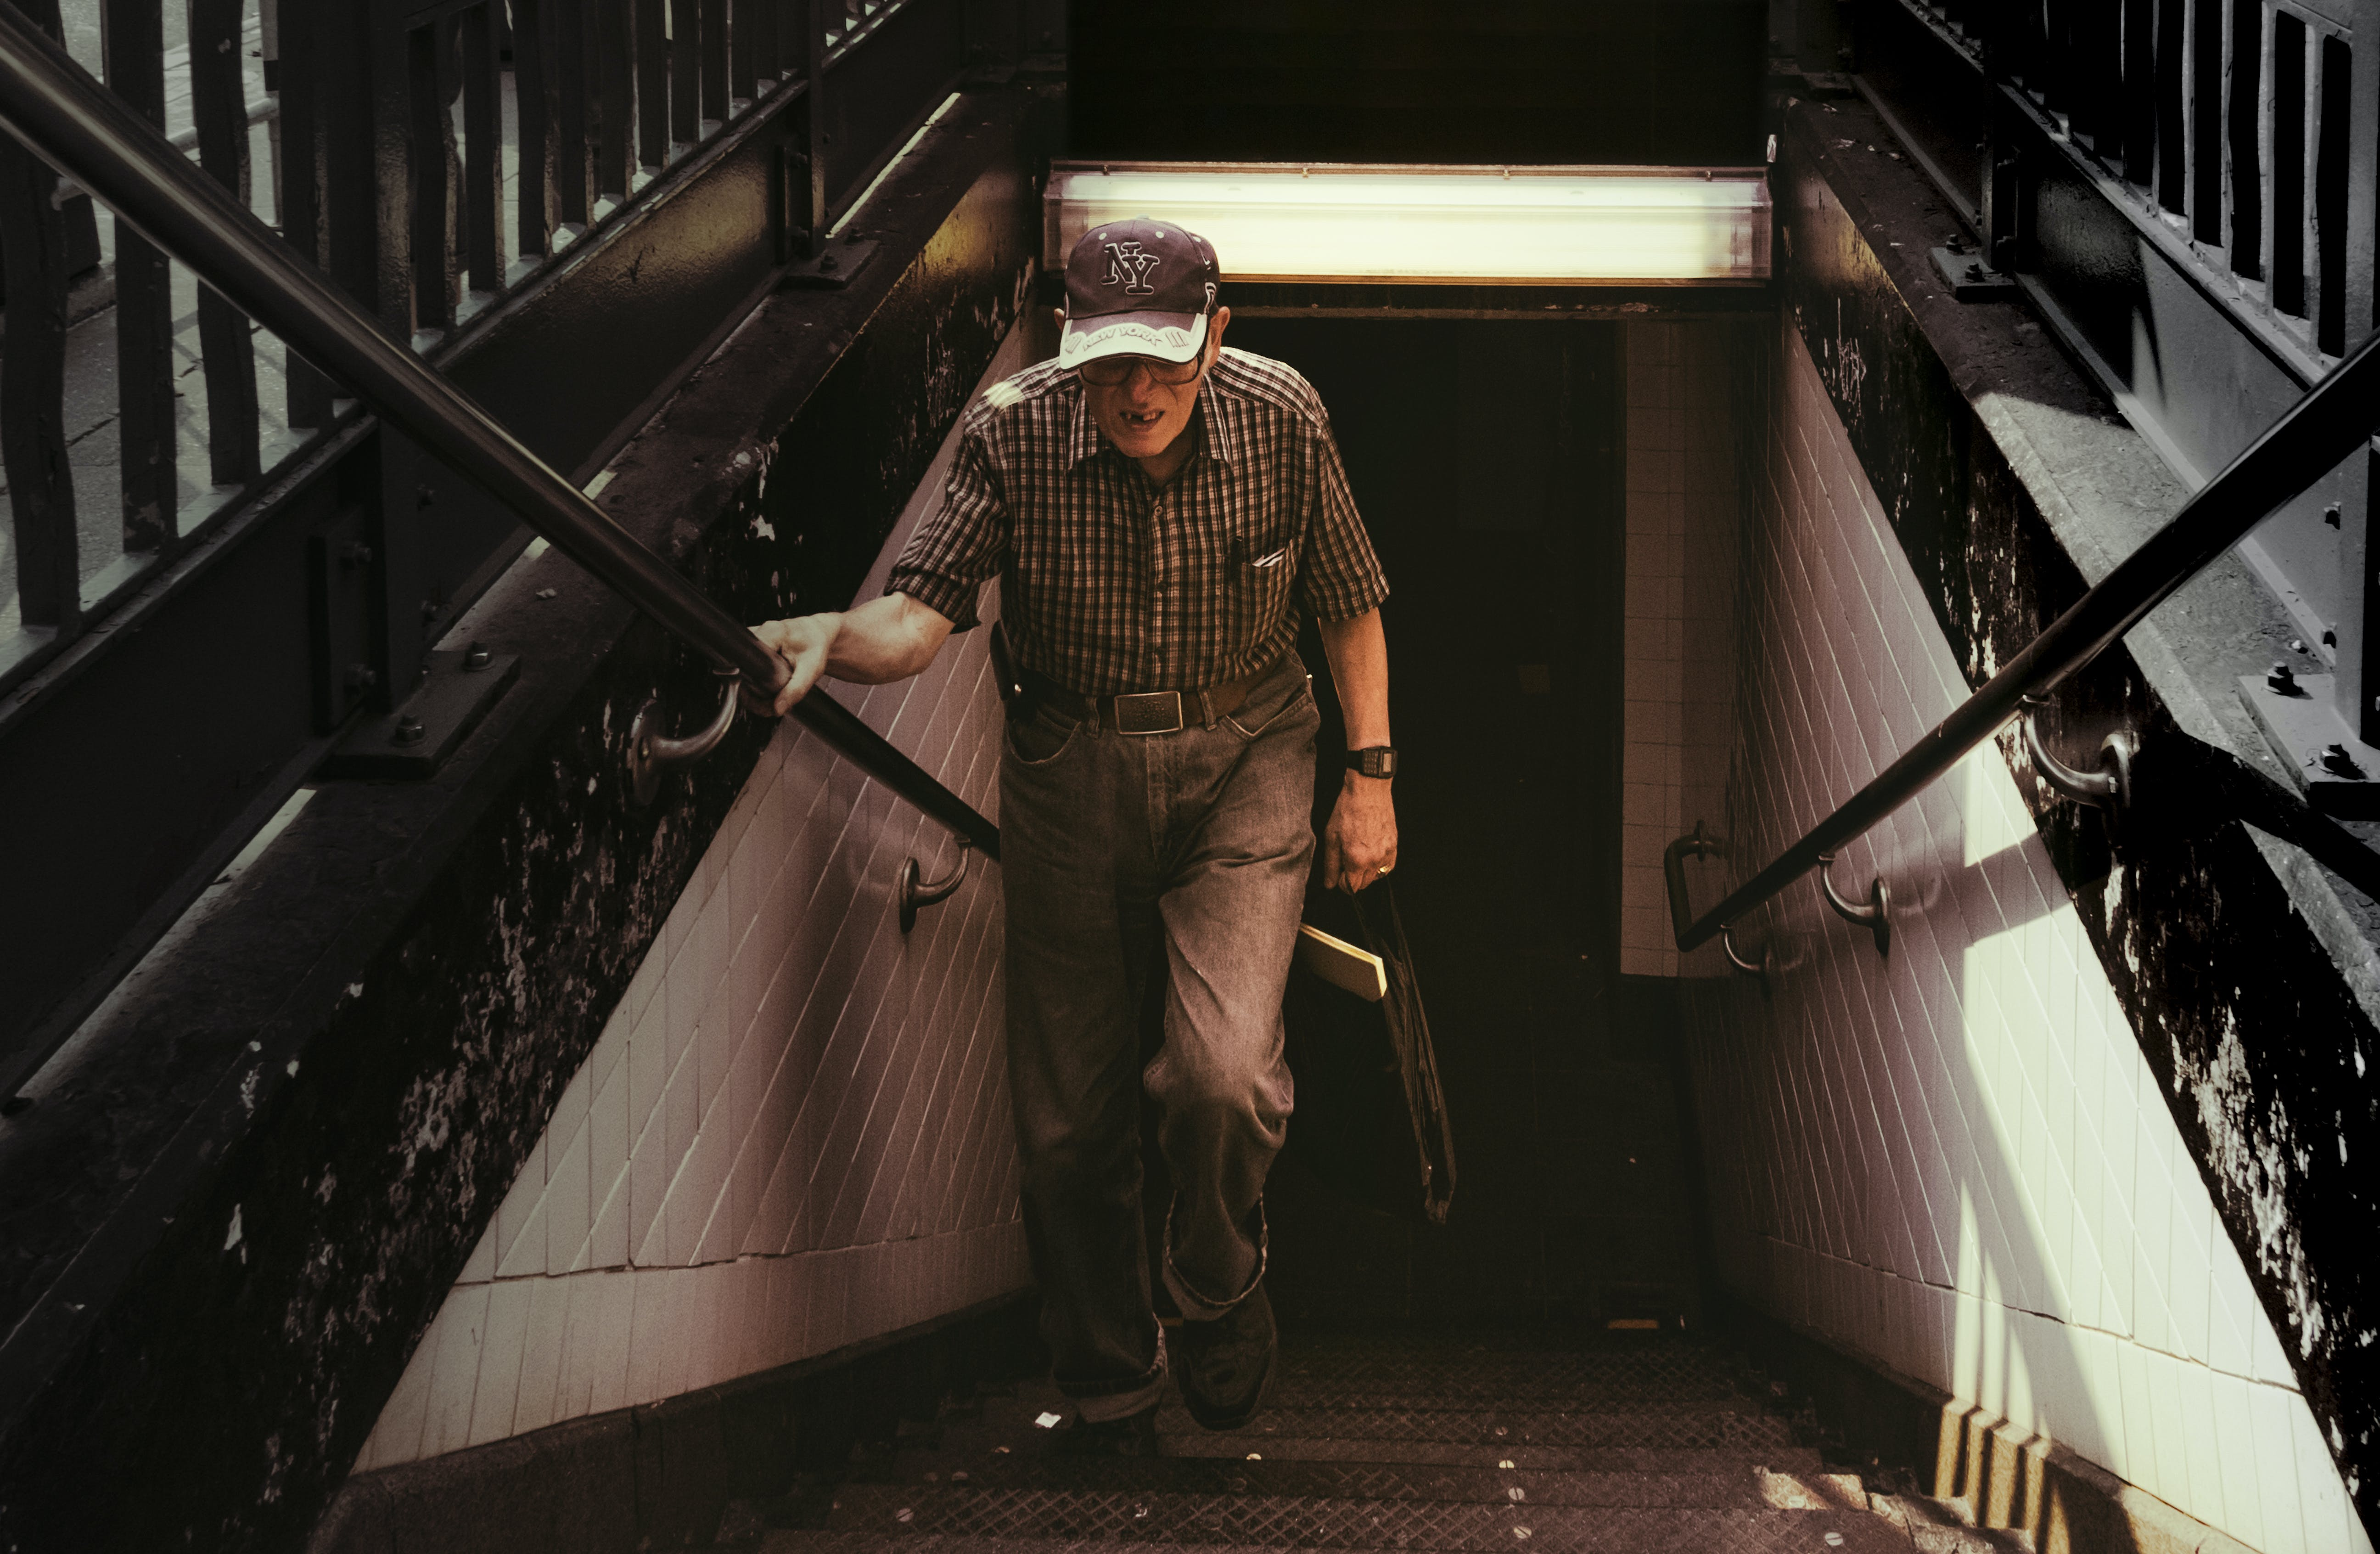 Man in Collared Shirt and Gray Pants Walking on Stairs